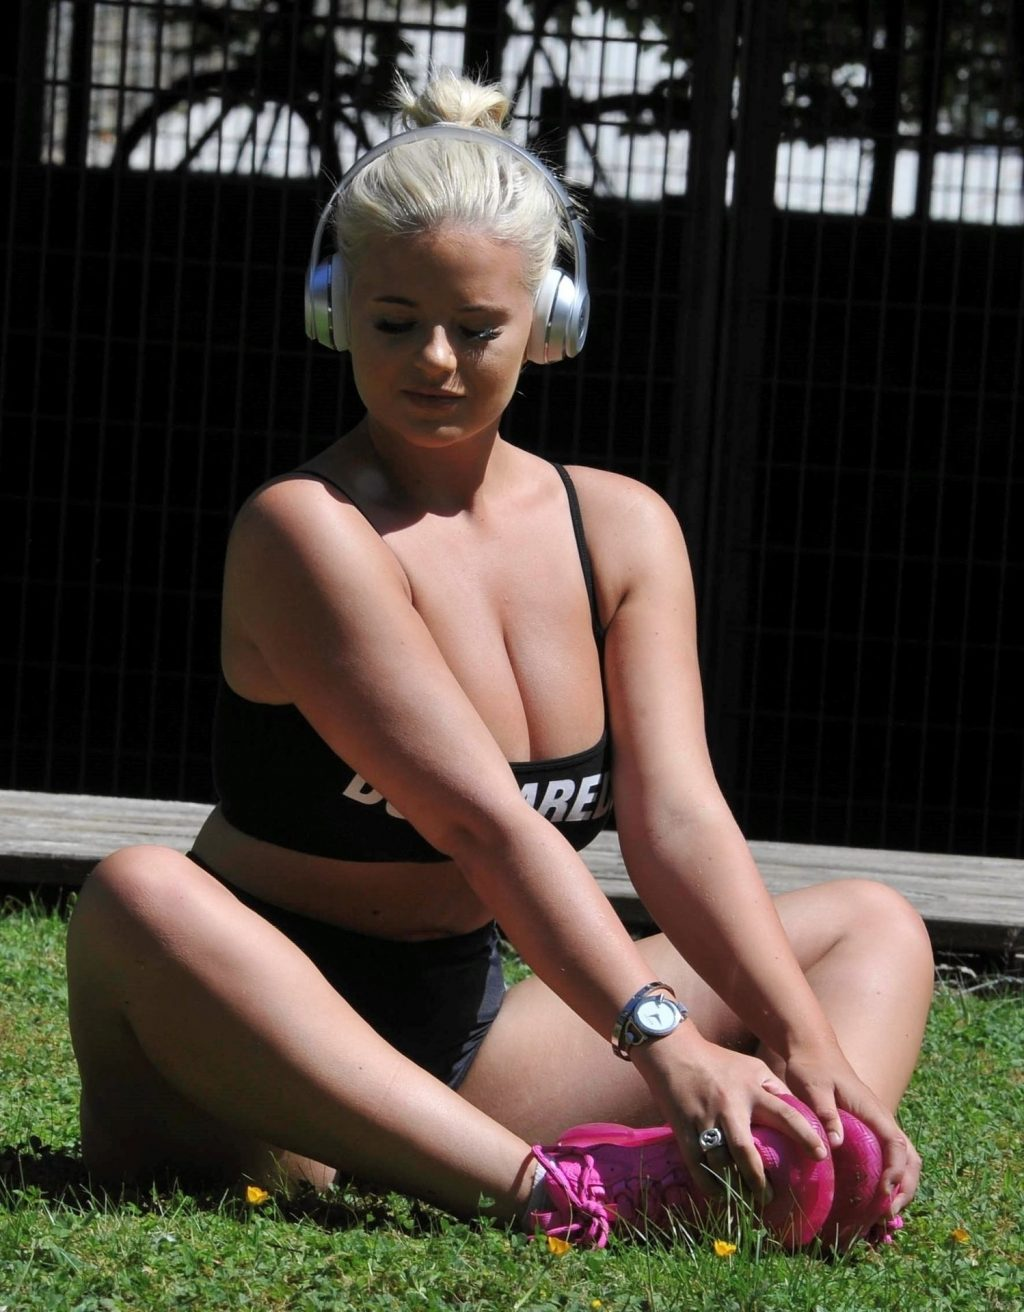 Apollonia Llewellyn Displays Her Boobs in a Park in Manchester (31 Photos)